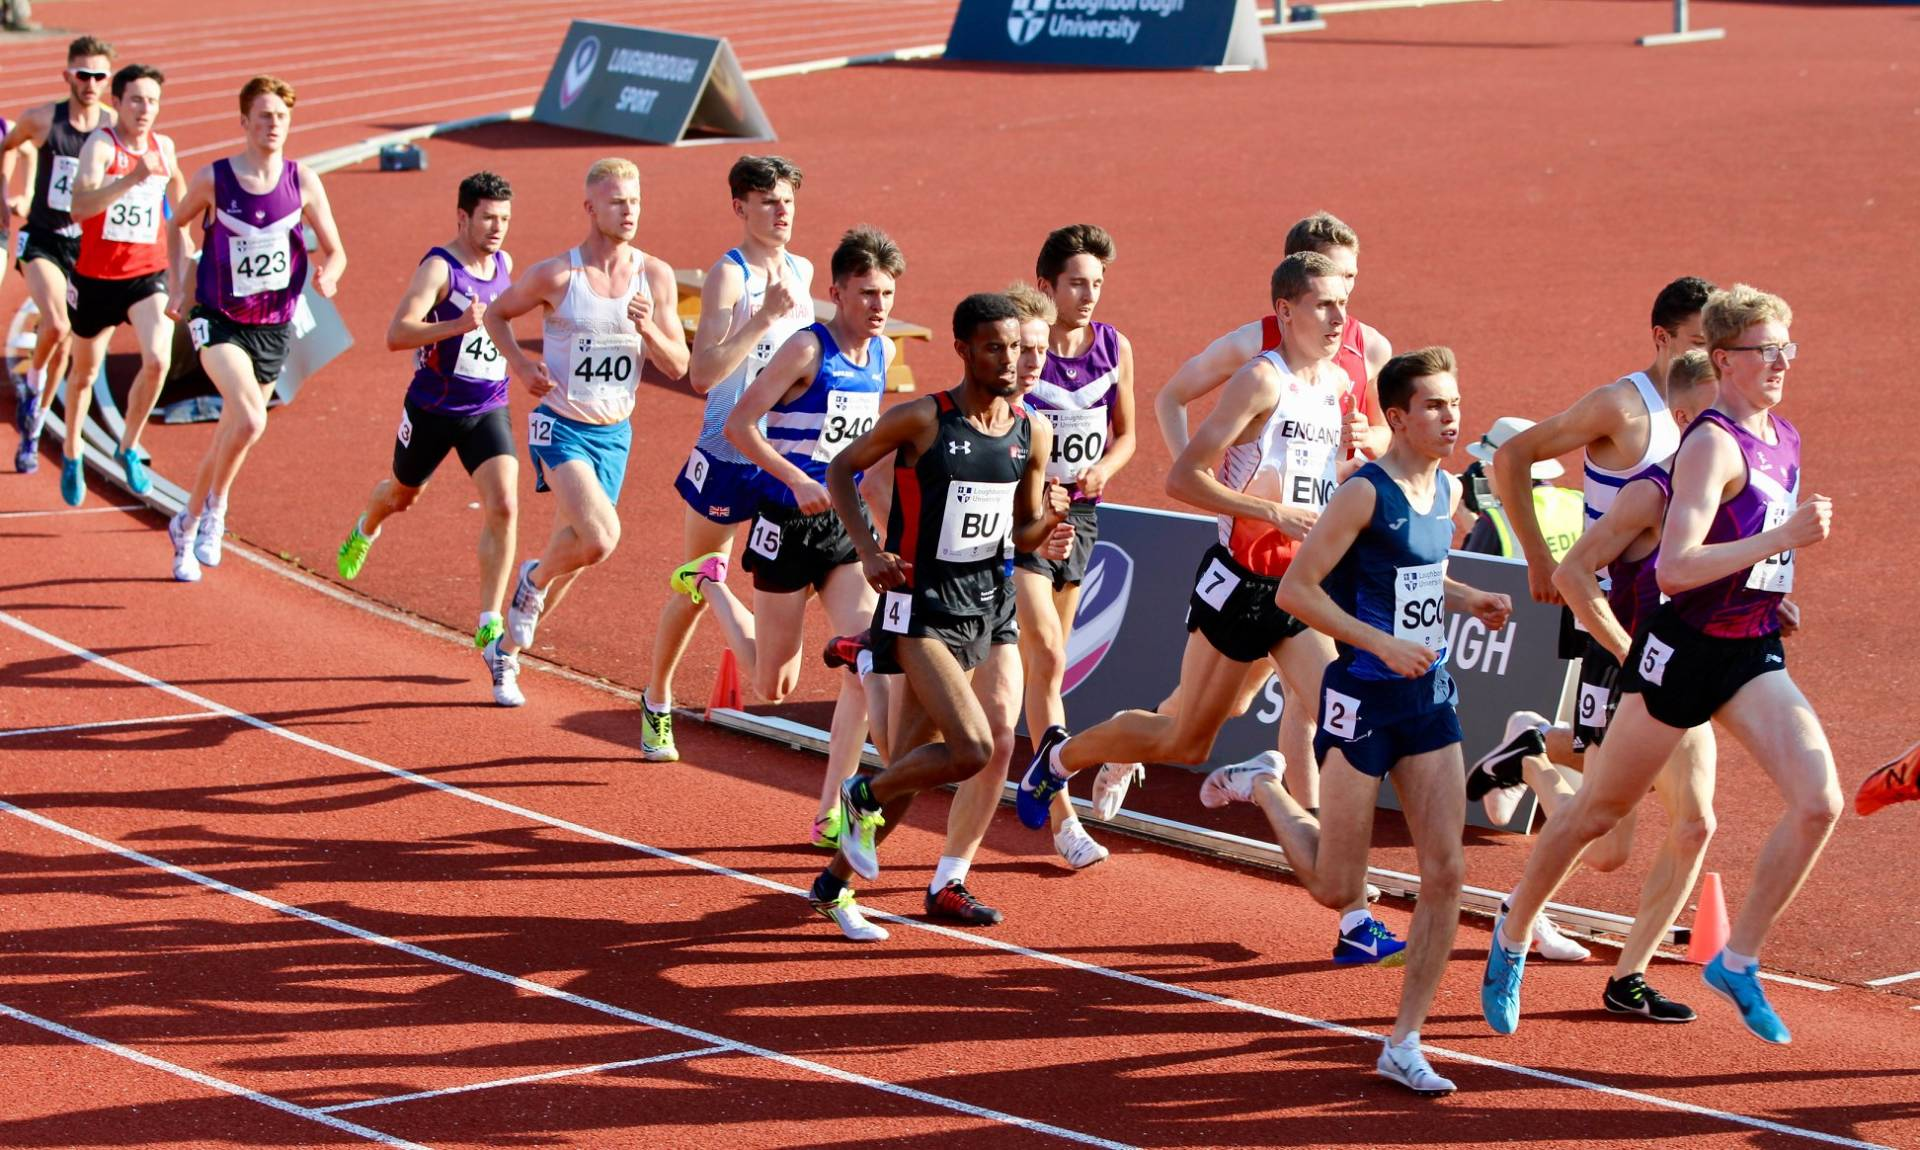 Rob  runs a big PB at Loughborough 3000m – Holly Wins in Germany – Jack earns his 'biggest win of his career' at Pedalcover Slateman Triathlon – 1st & 2nd for Harriers youngsters at St Anne's Triathlon – Manchester 10k / Liverpool Marathon / Pilling 10k